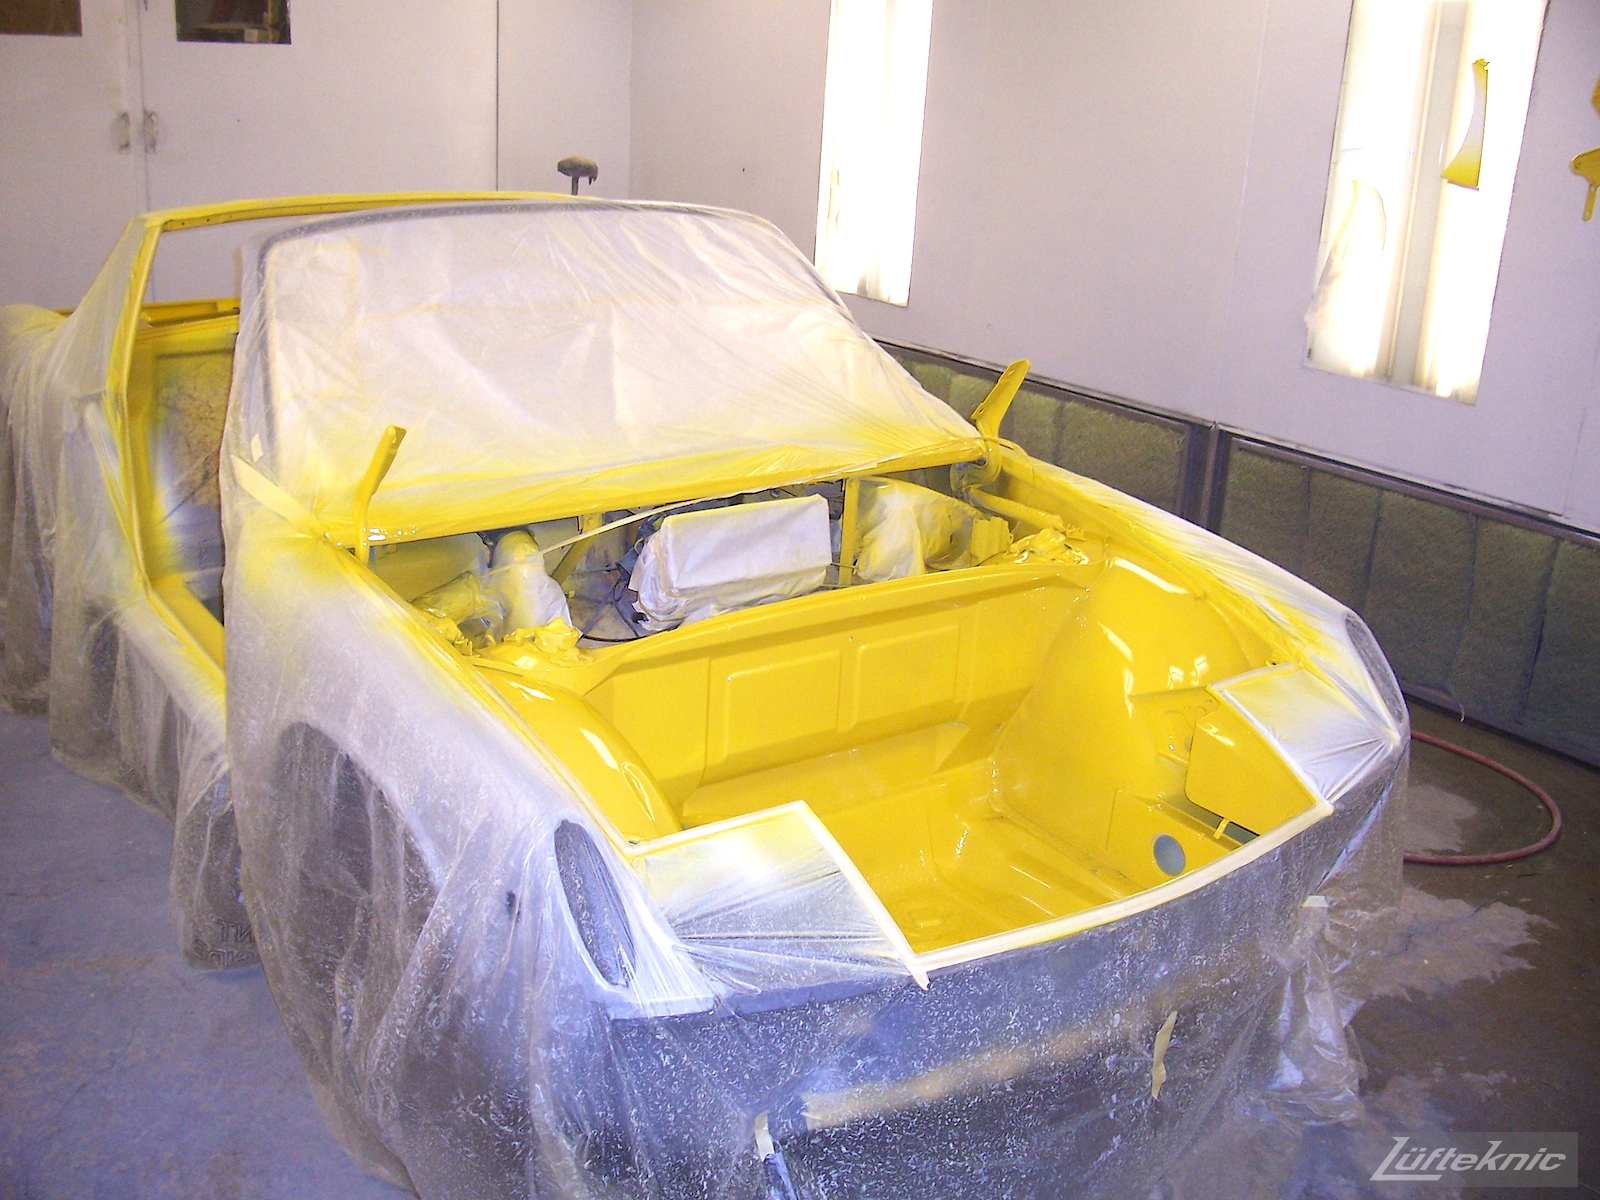 Fresh yellow paint on the interior pieces of a Porsche 914 being restored.